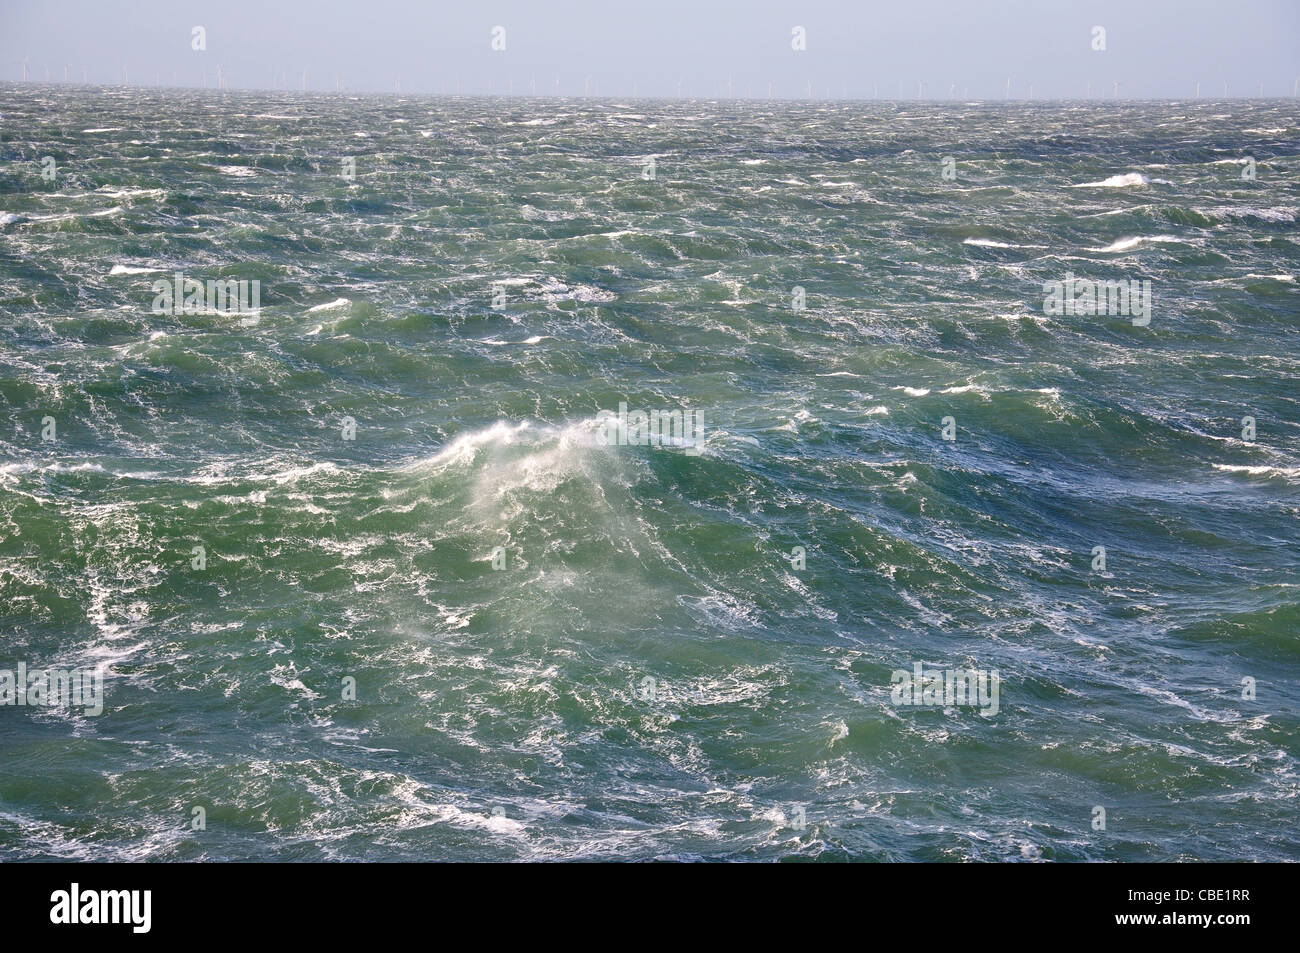 Rough sea and spray, North Sea, Europe - Stock Image